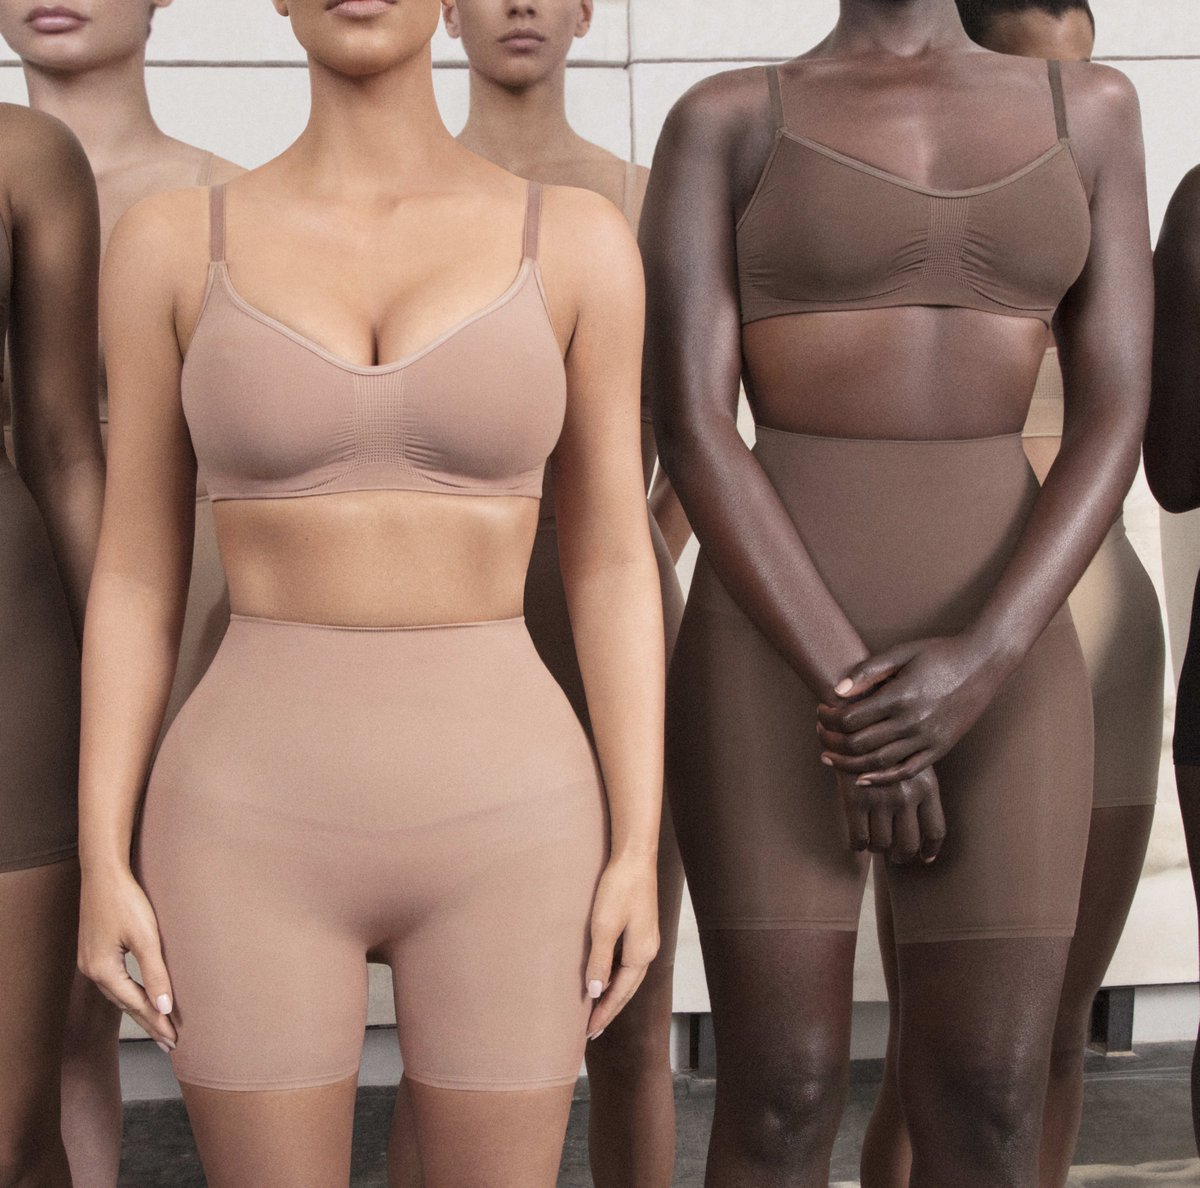 This is the shapewear that changed the industry. Our best selling Sculpting Bra is available in select colors and sizes XXS - 5X. Shop now before it sells out again and enjoy free shipping on domestic orders over $75. Shop: skims.social/twitter-shop